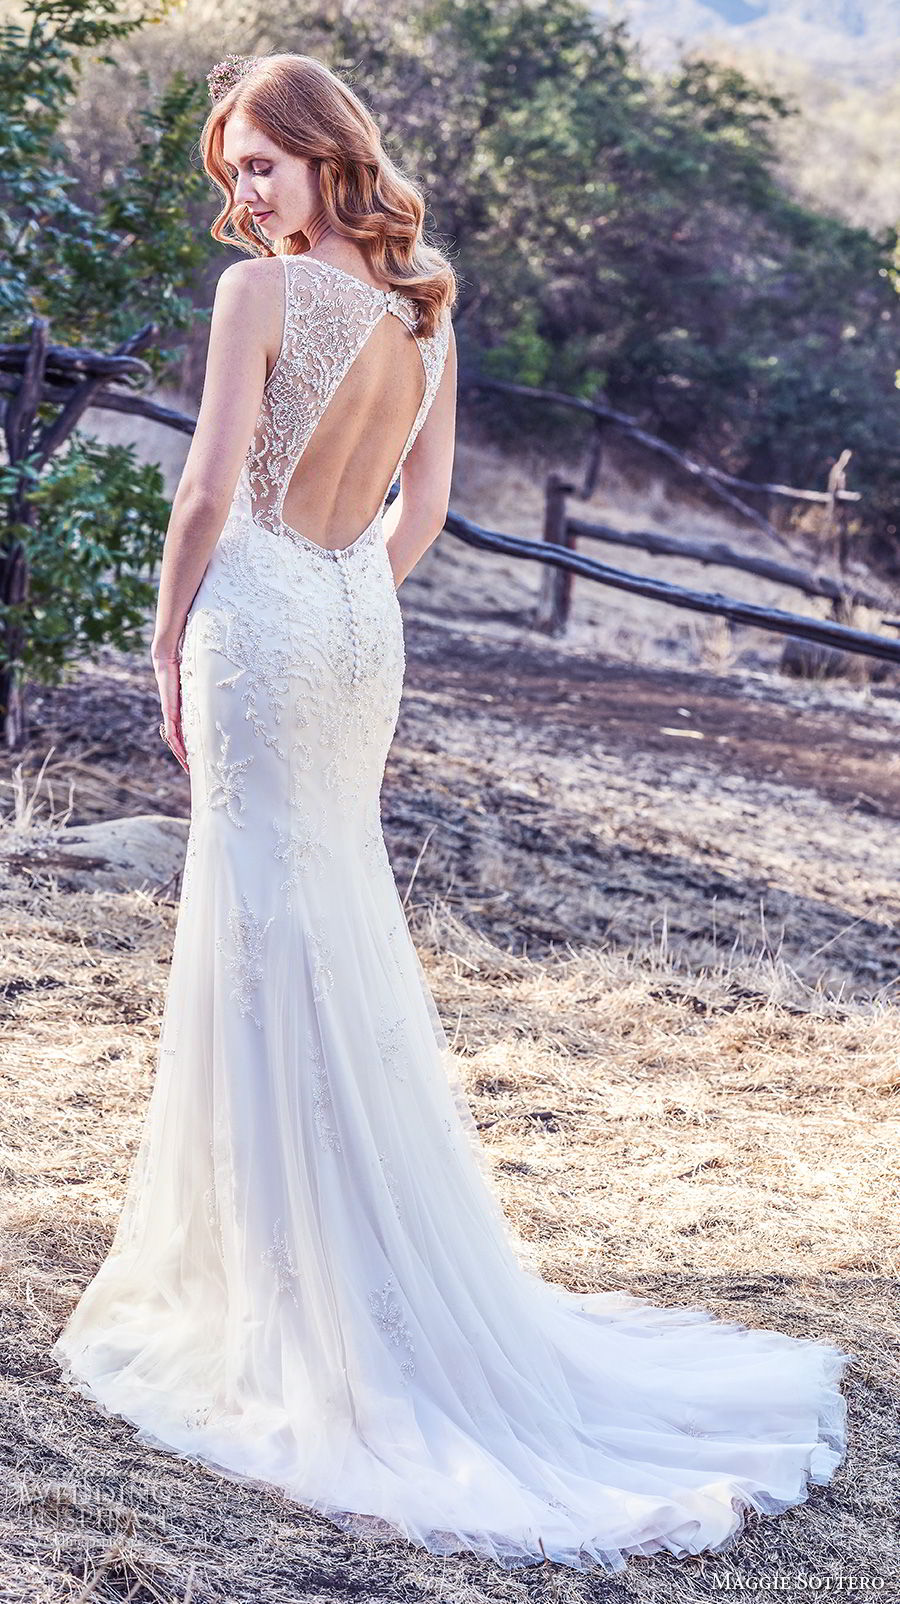 maggie sottero fall 2017 bridal sleeveless with strap v neck heavily embellished beaded bodice elegant fit and flare wedding dress keyhole back medium train (938) bv